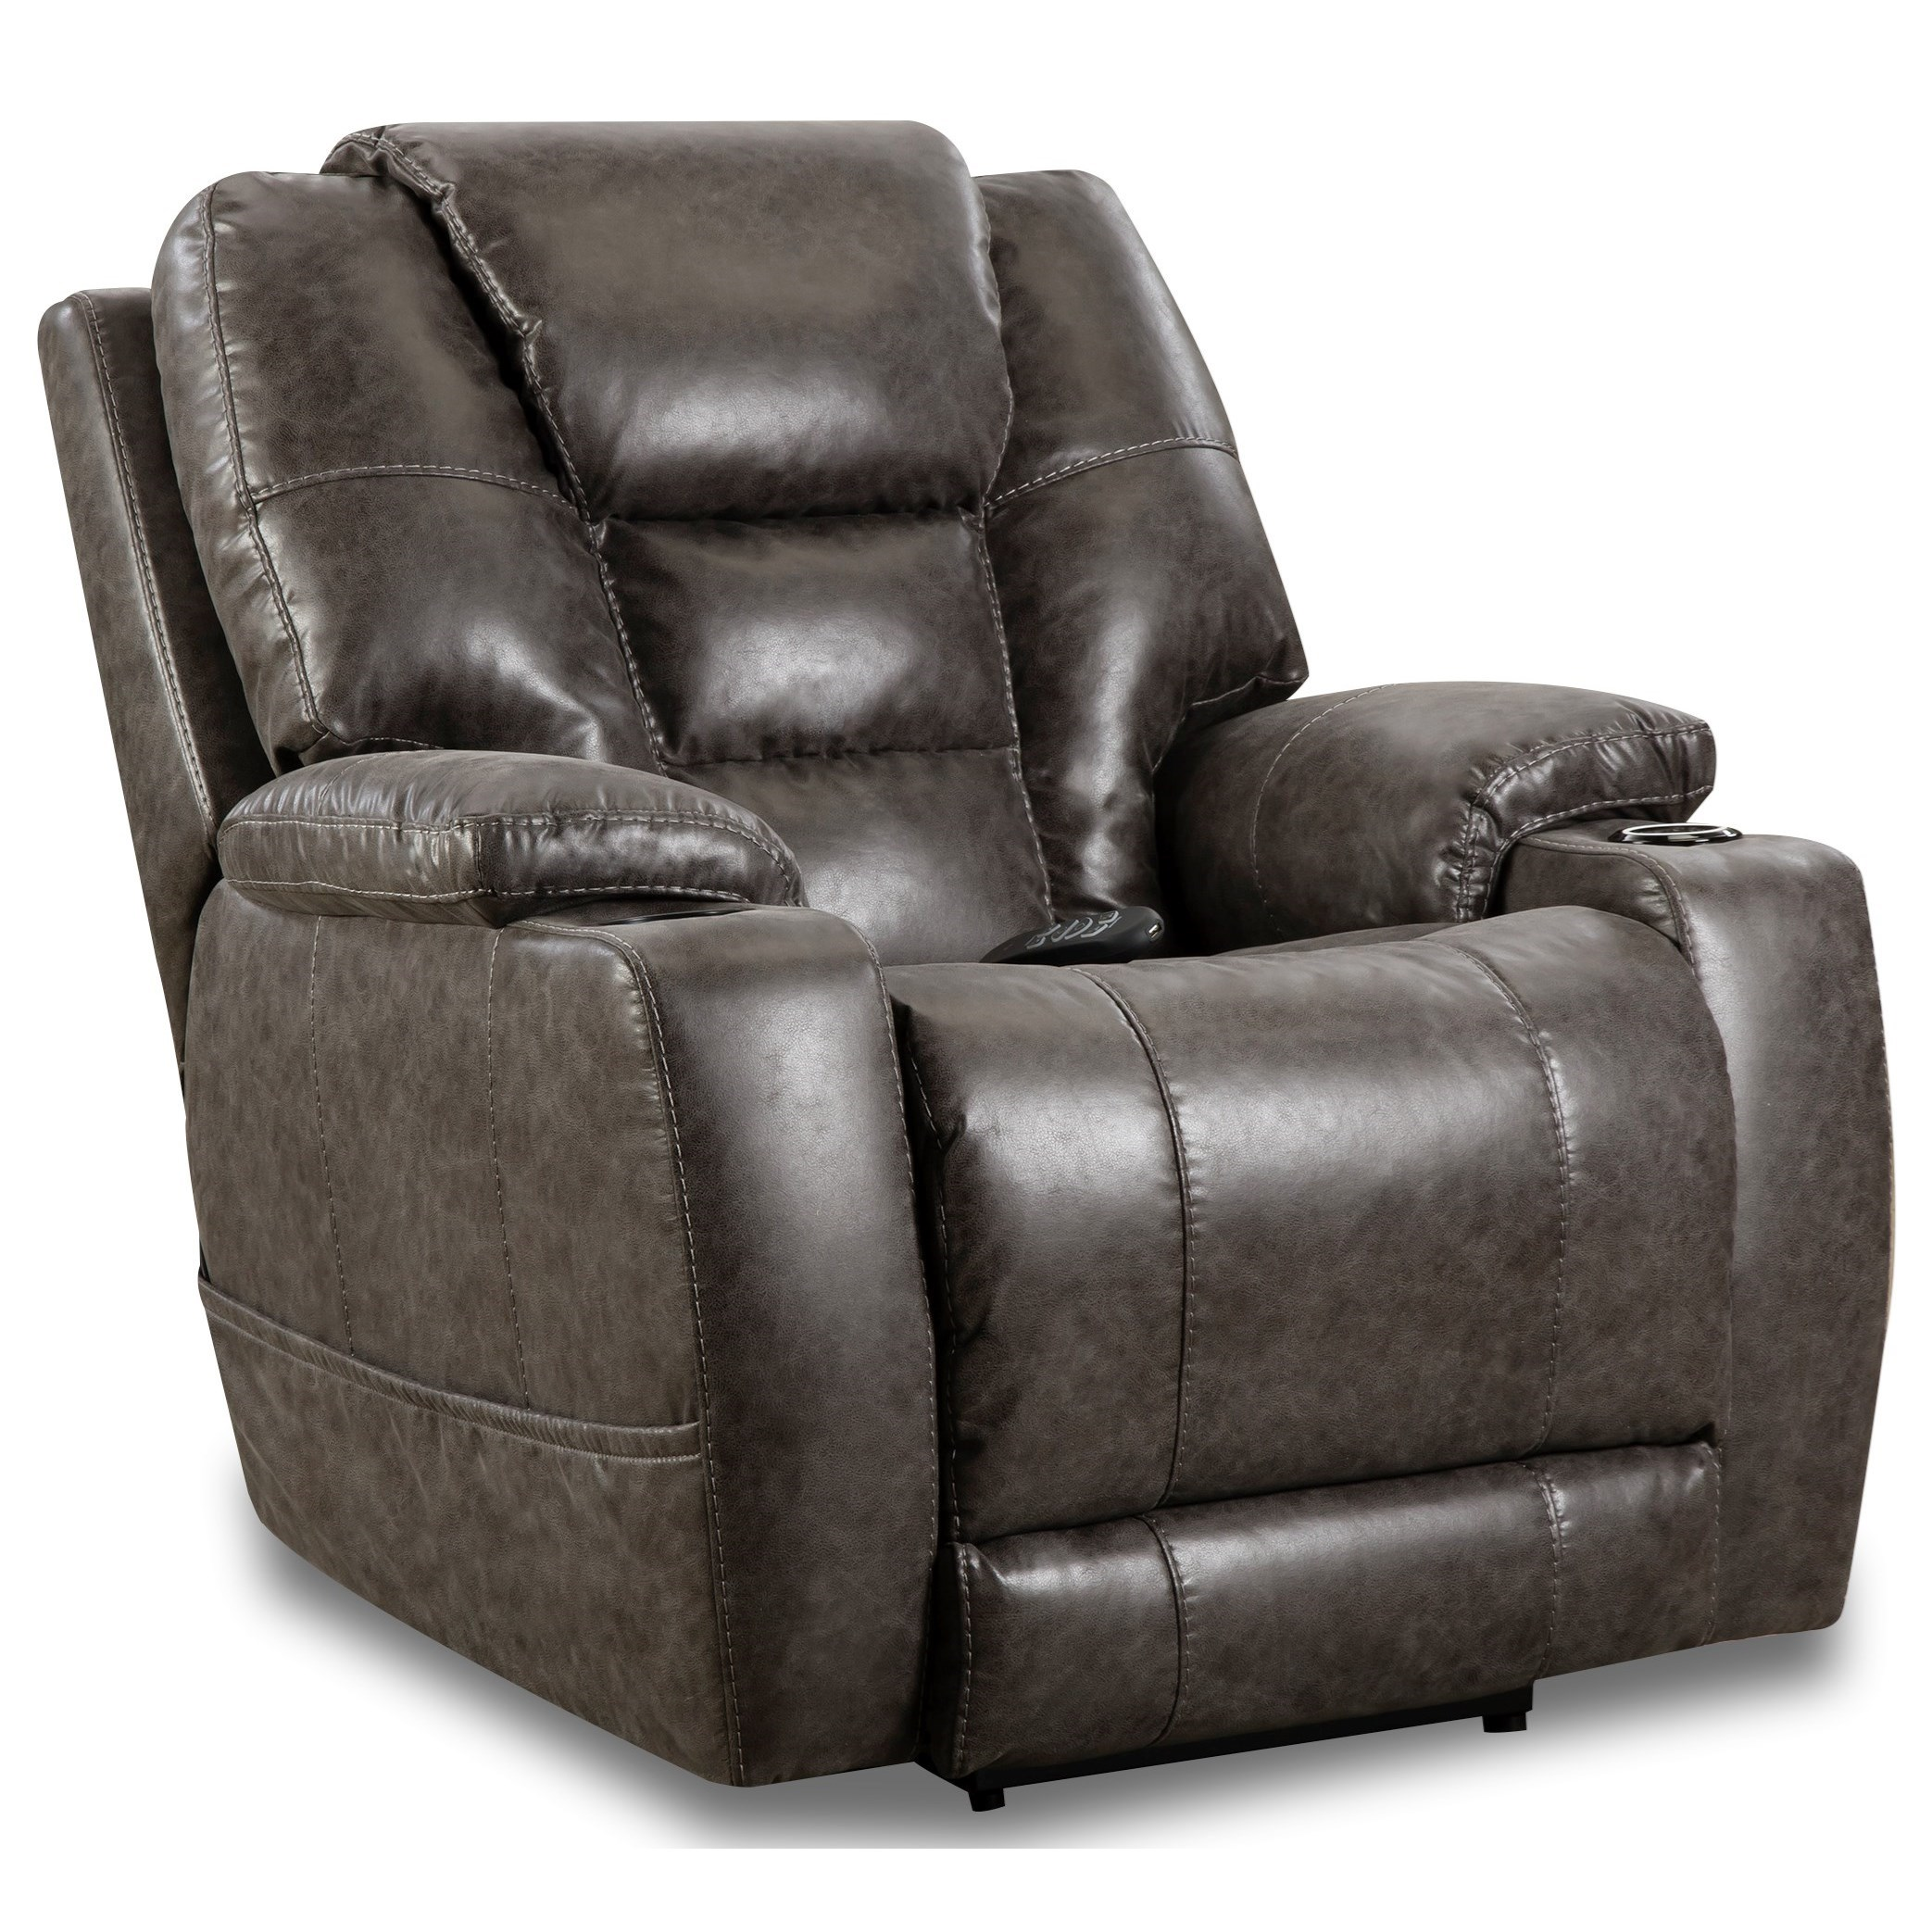 Discovery Power Recliner by HomeStretch at Darvin Furniture